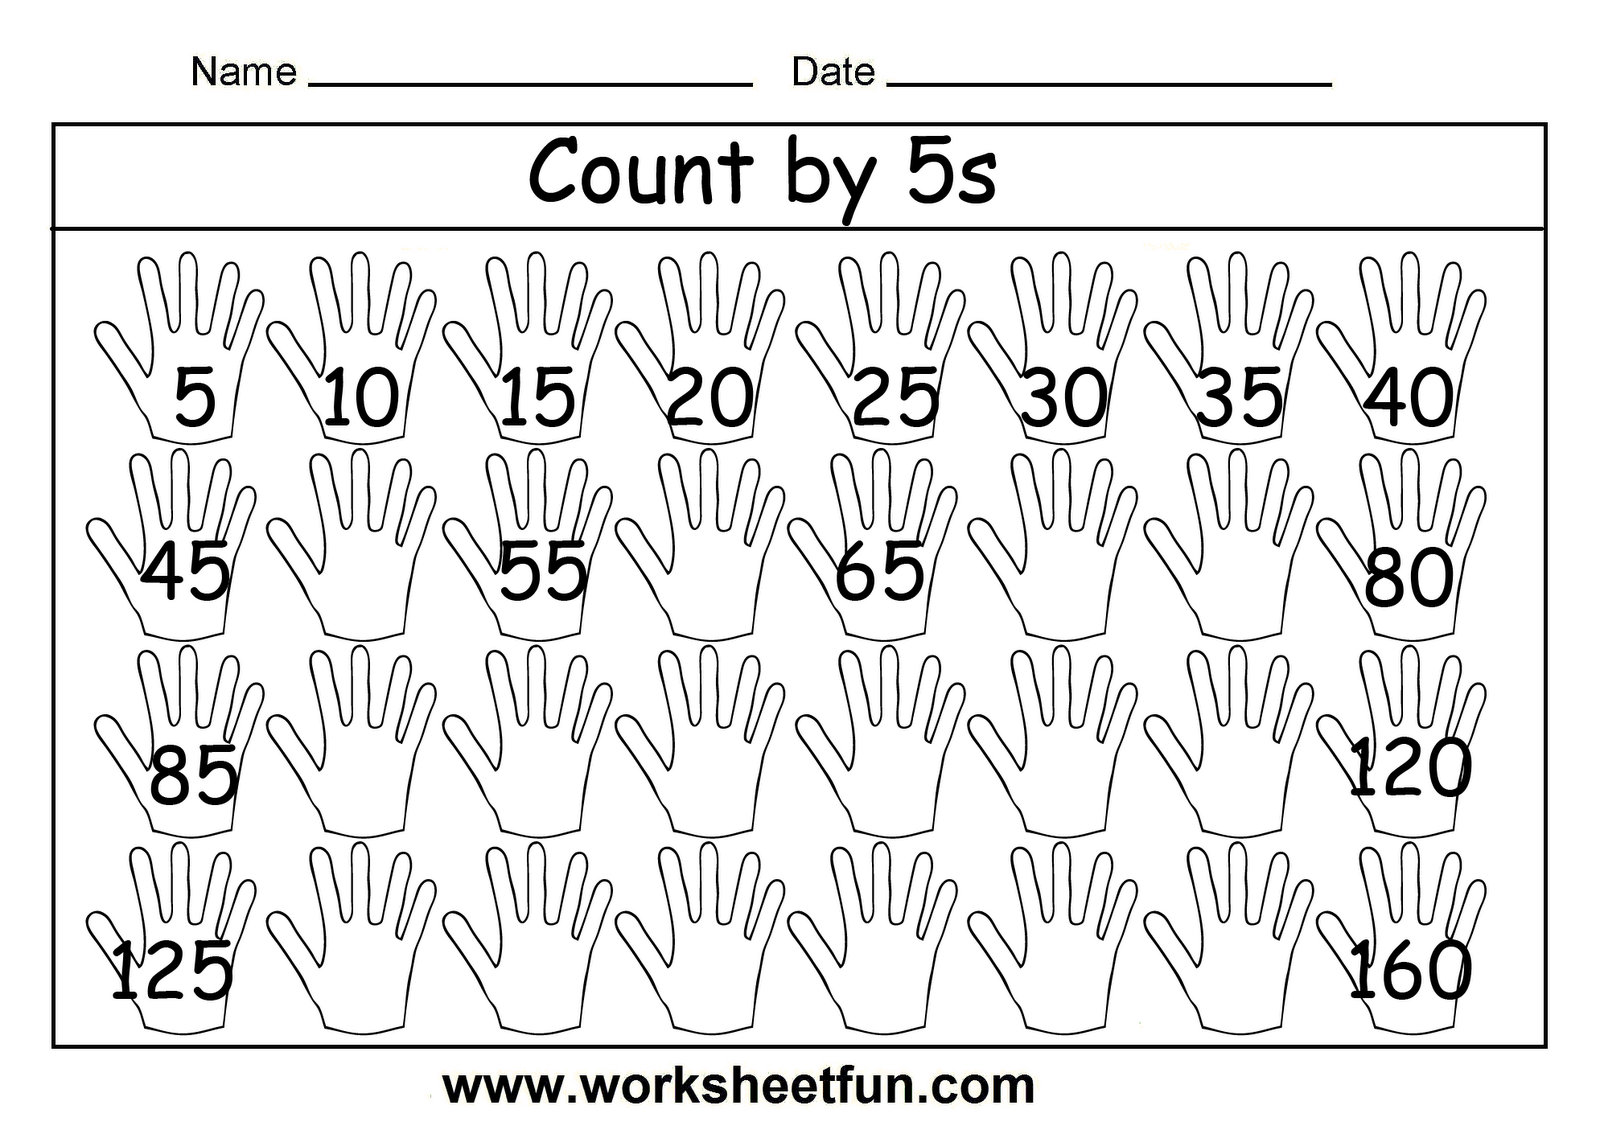 Free Printable Math Worksheets Count By 5s